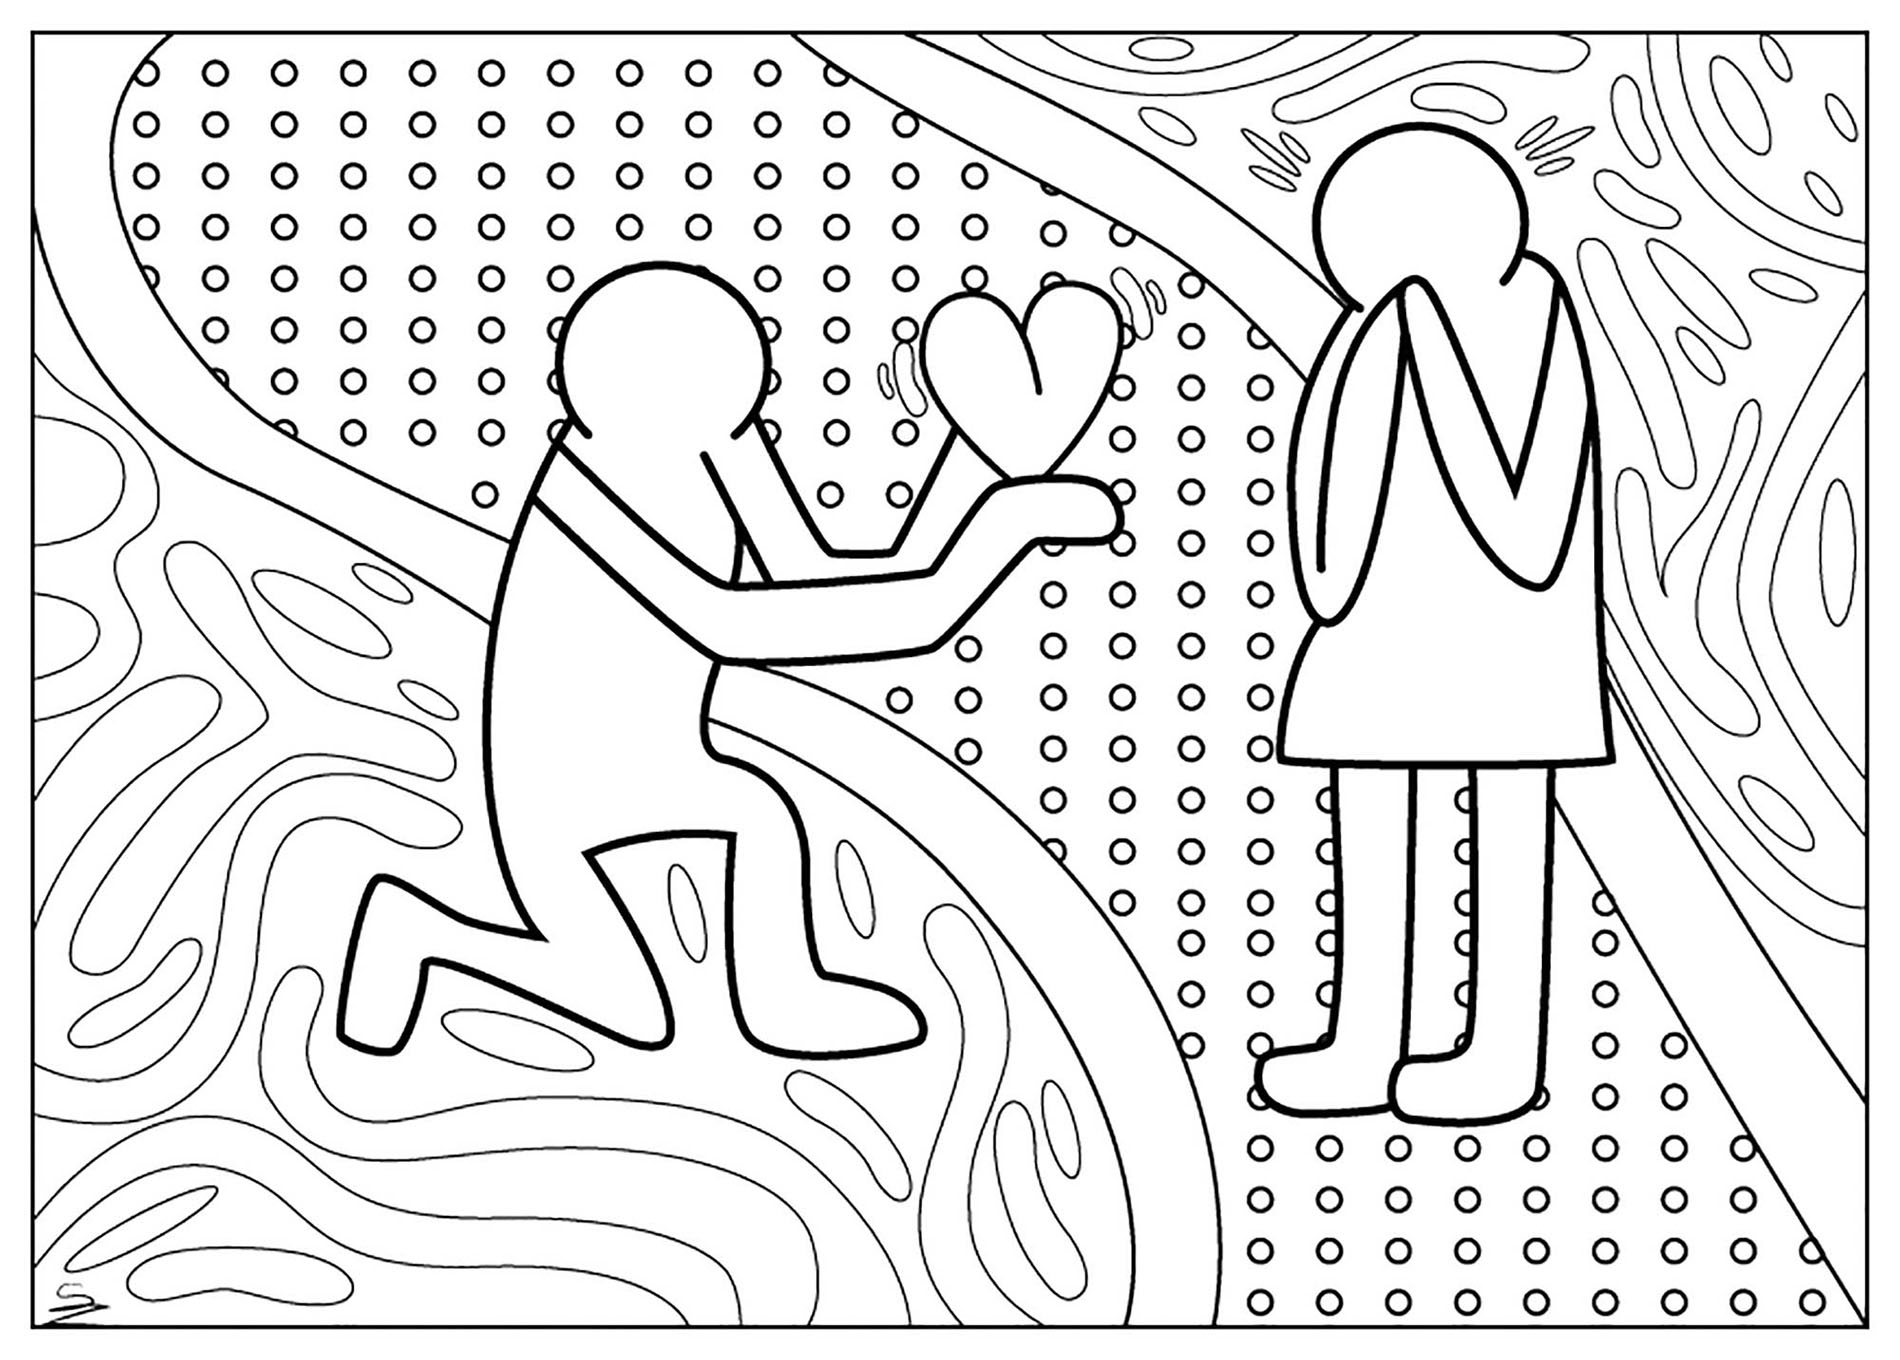 keith haring coloring pages keith haring to print keith haring kids coloring pages pages haring keith coloring